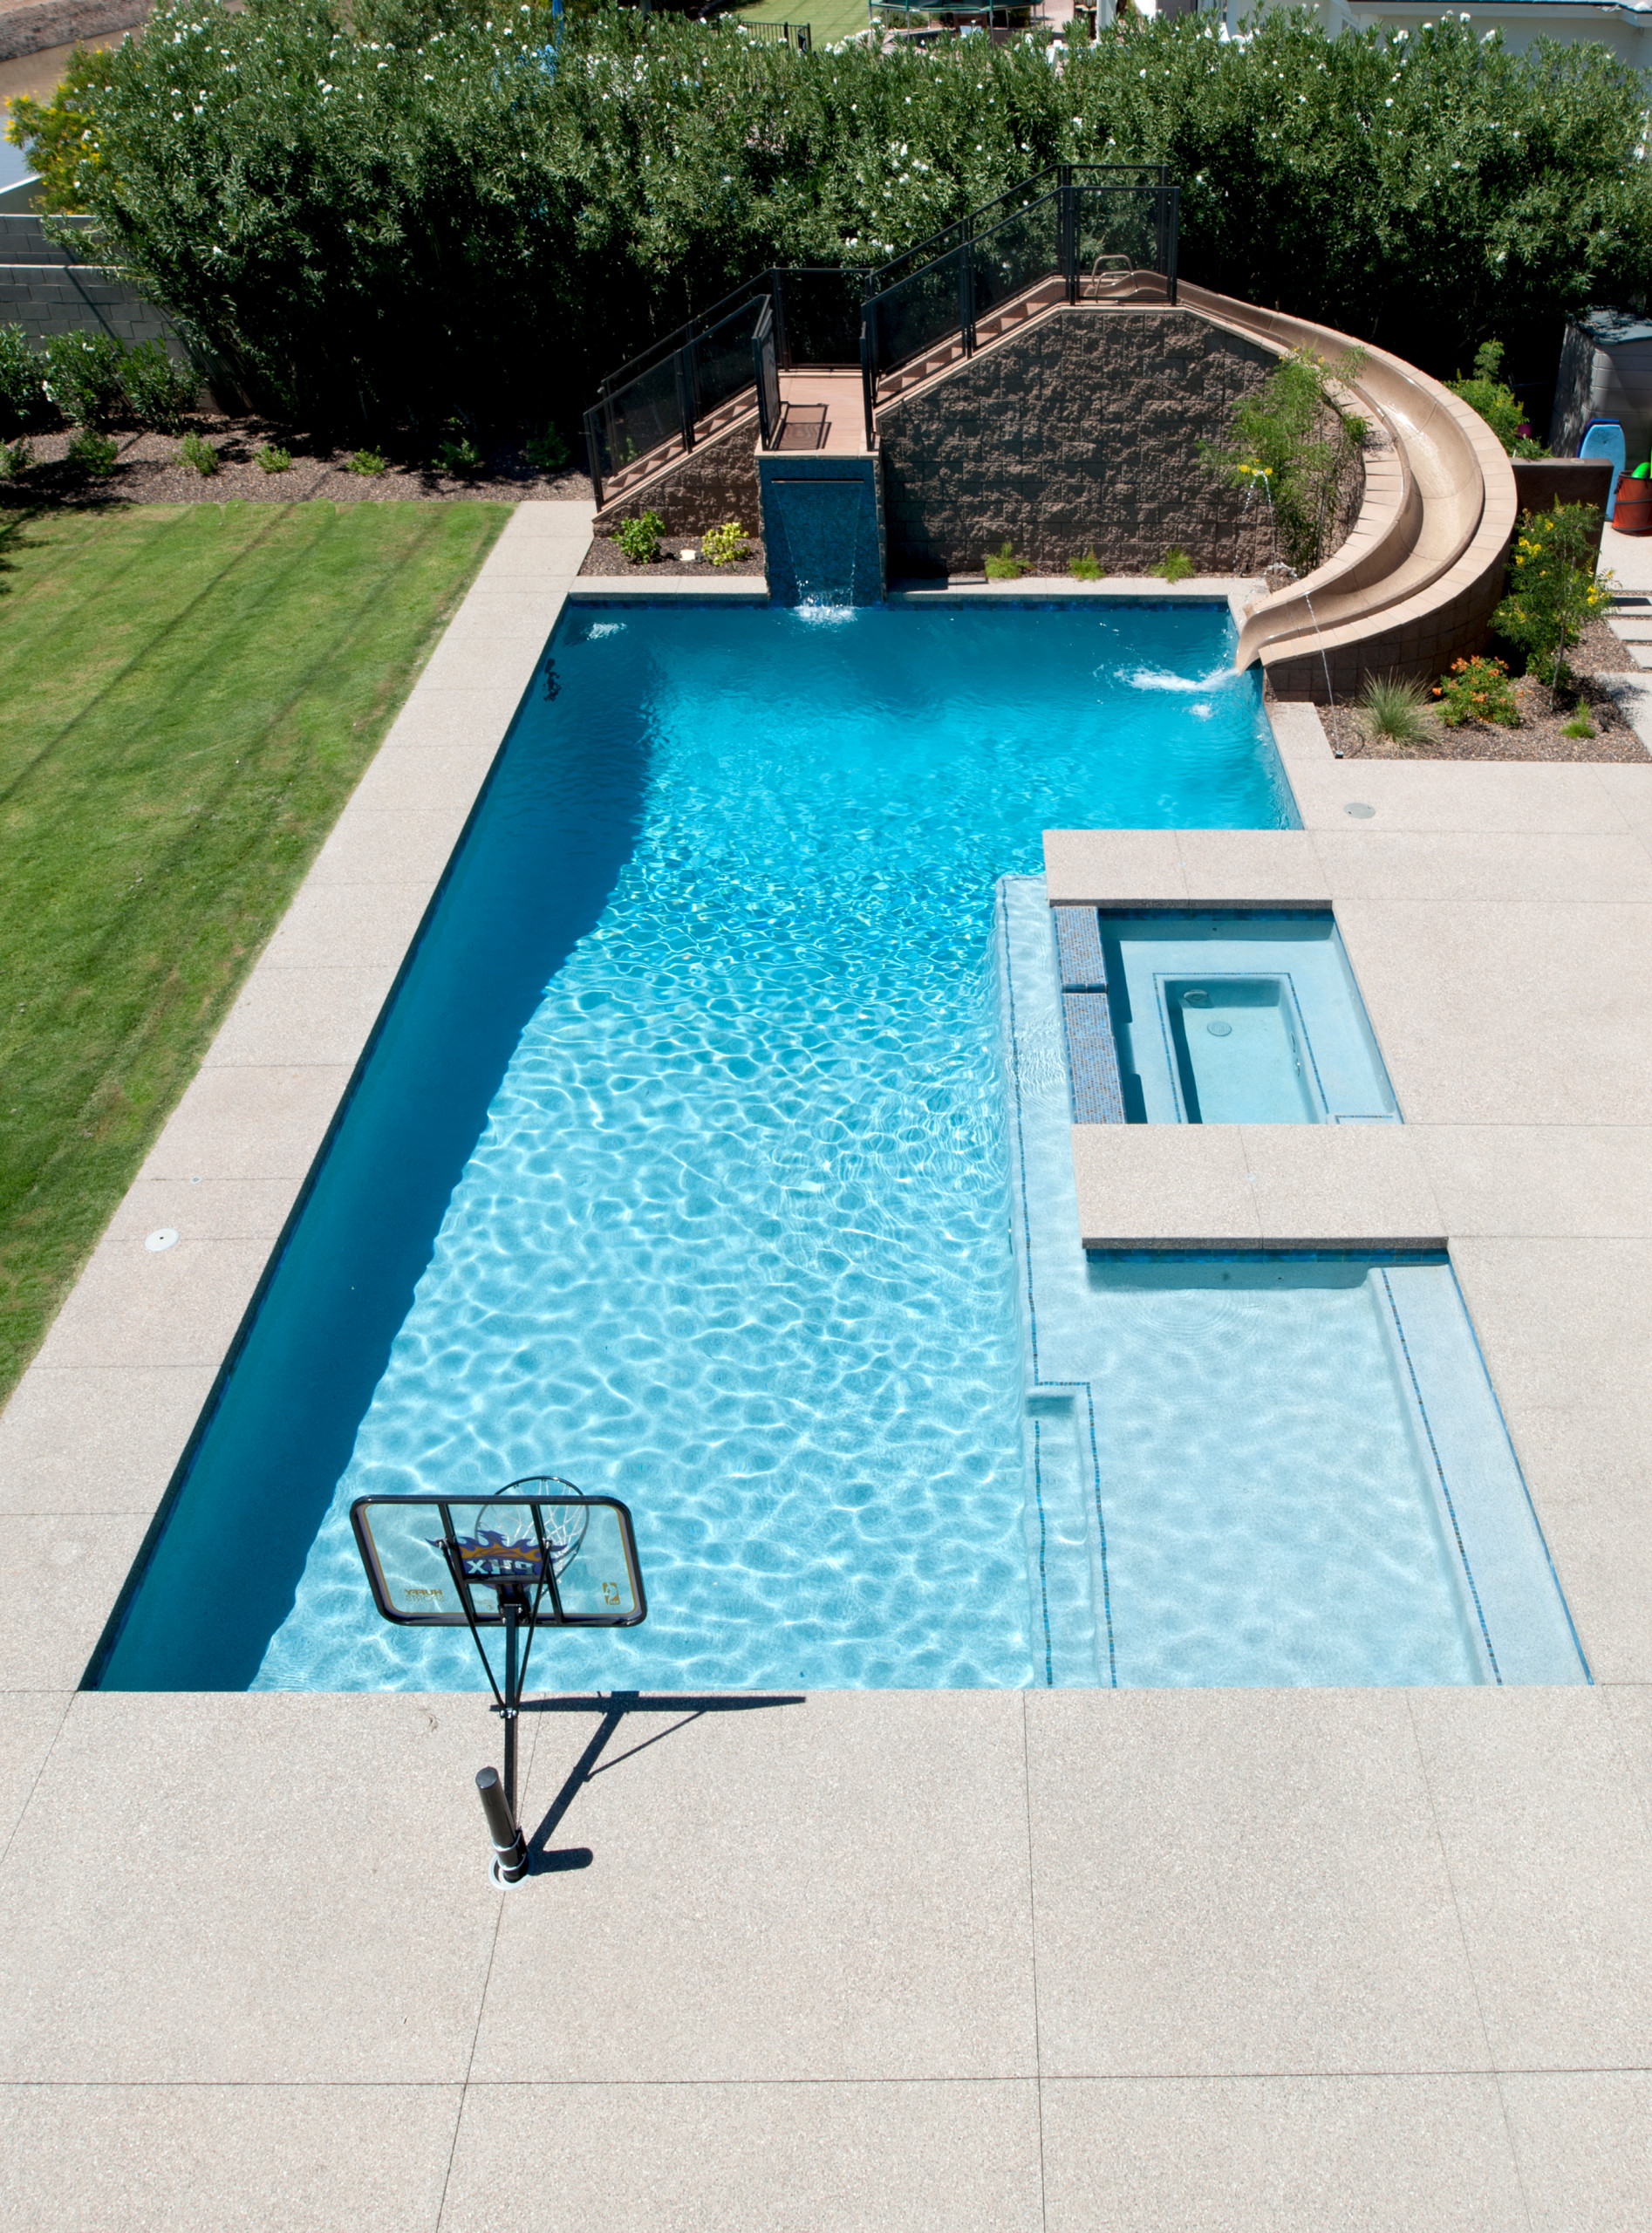 75 Beautiful Pool Pictures Ideas September 2020 Houzz